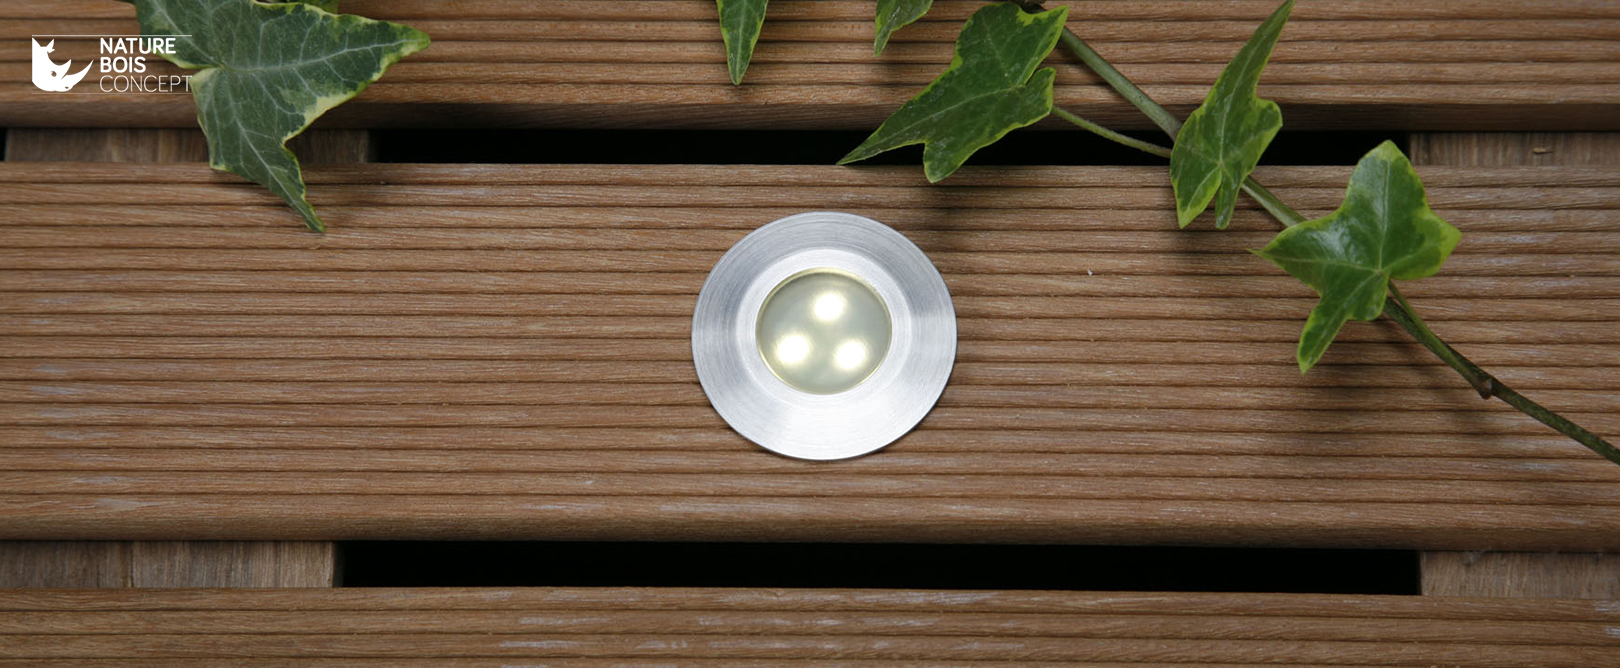 lampes-led-encastrable-inox-terrrasse-bois